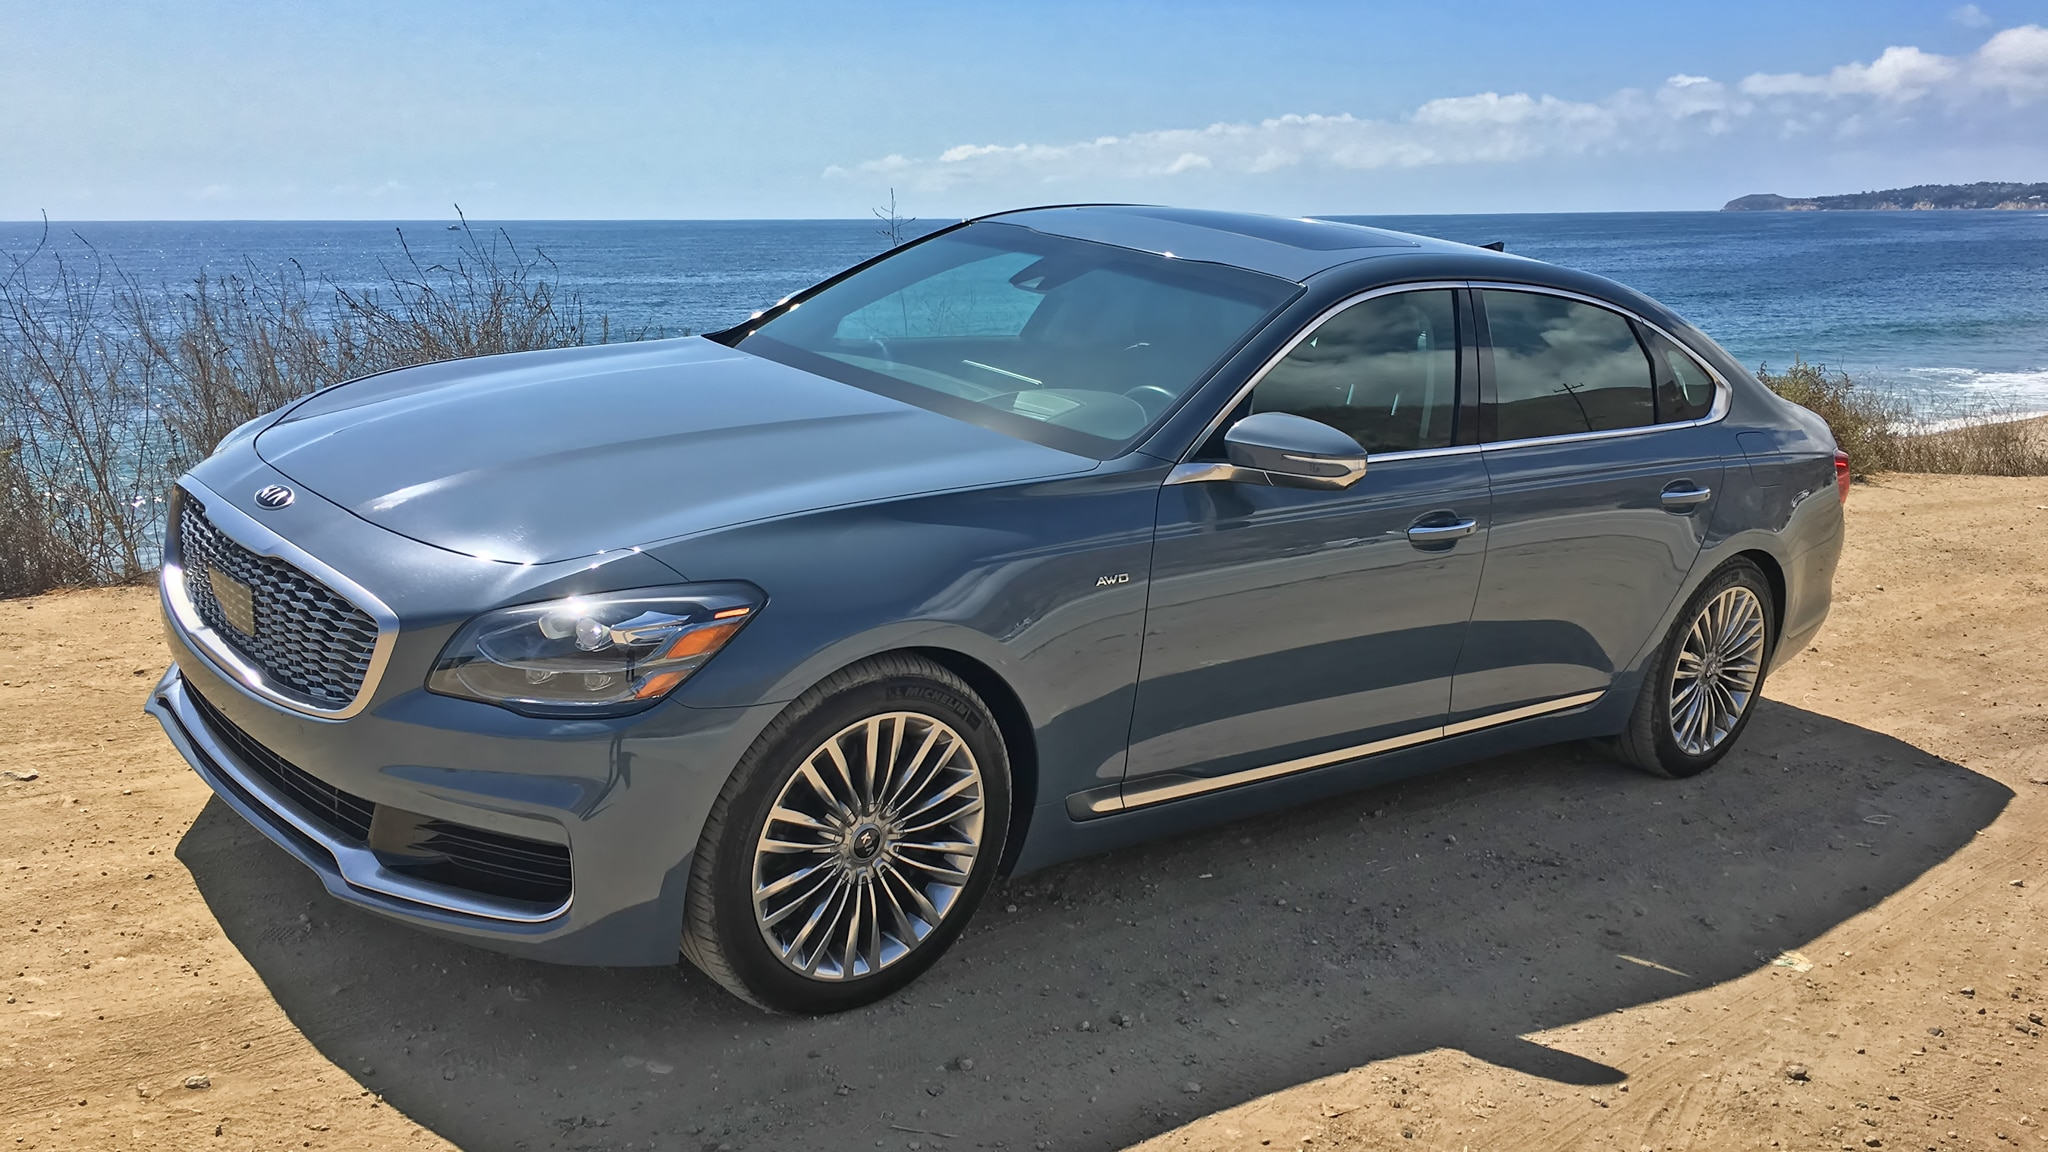 2019 Kia K900 Review: It's a Big Step Up | Automobile Magazine